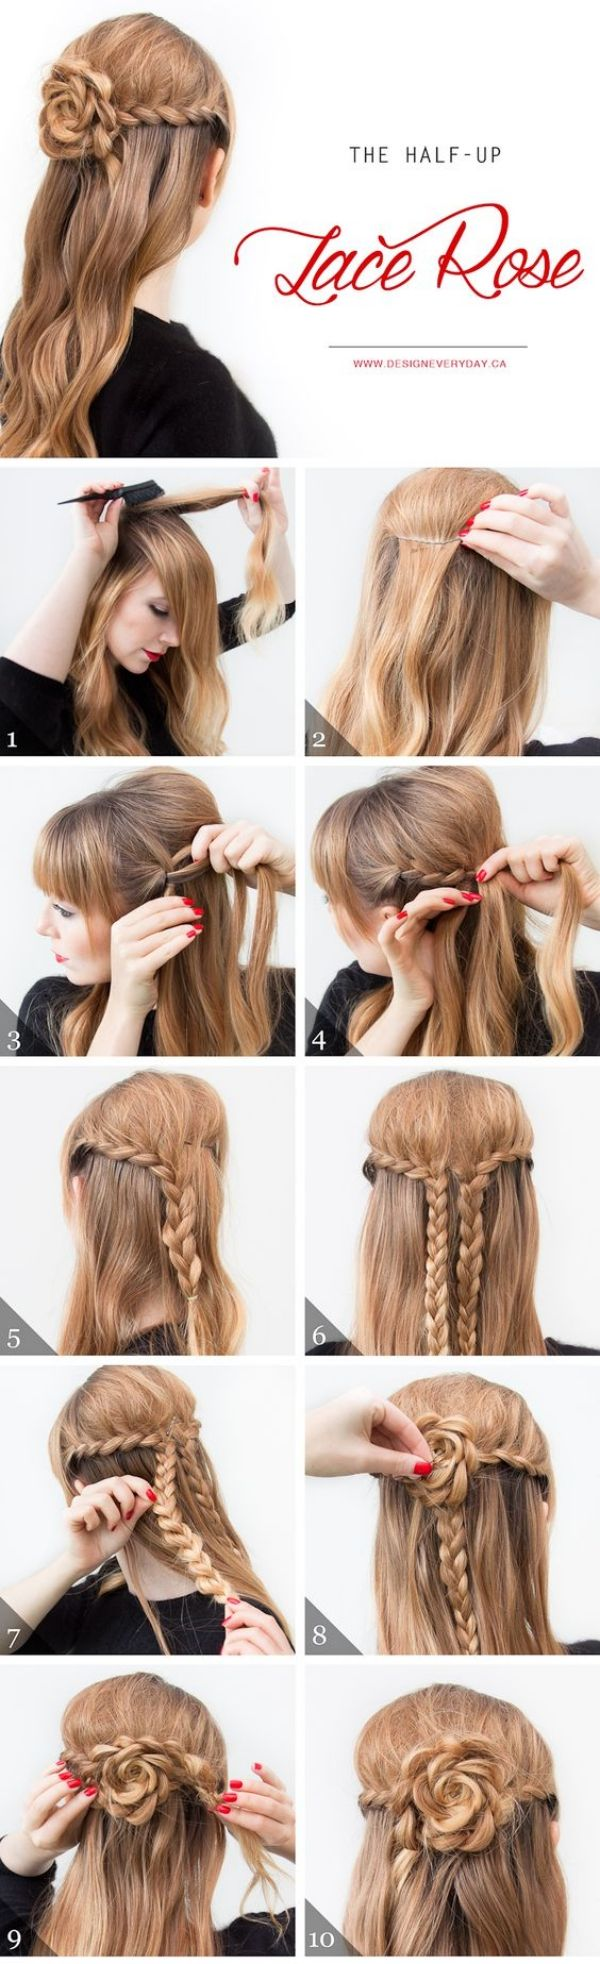 cute and sexy braided hairstyles for teen girls bad hair and